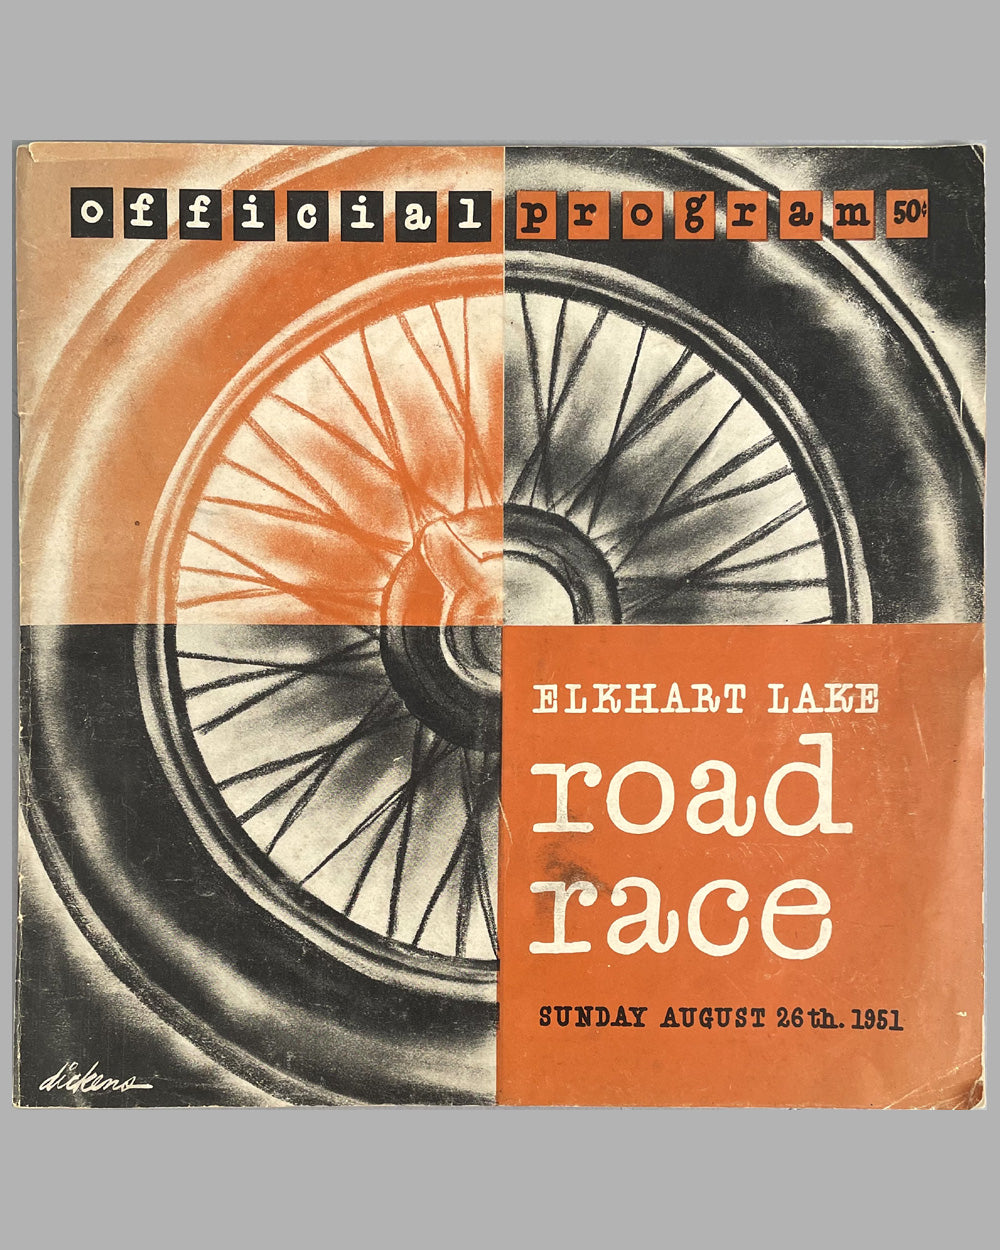 Early Elkhart Lake road race program - August 26th, 1951